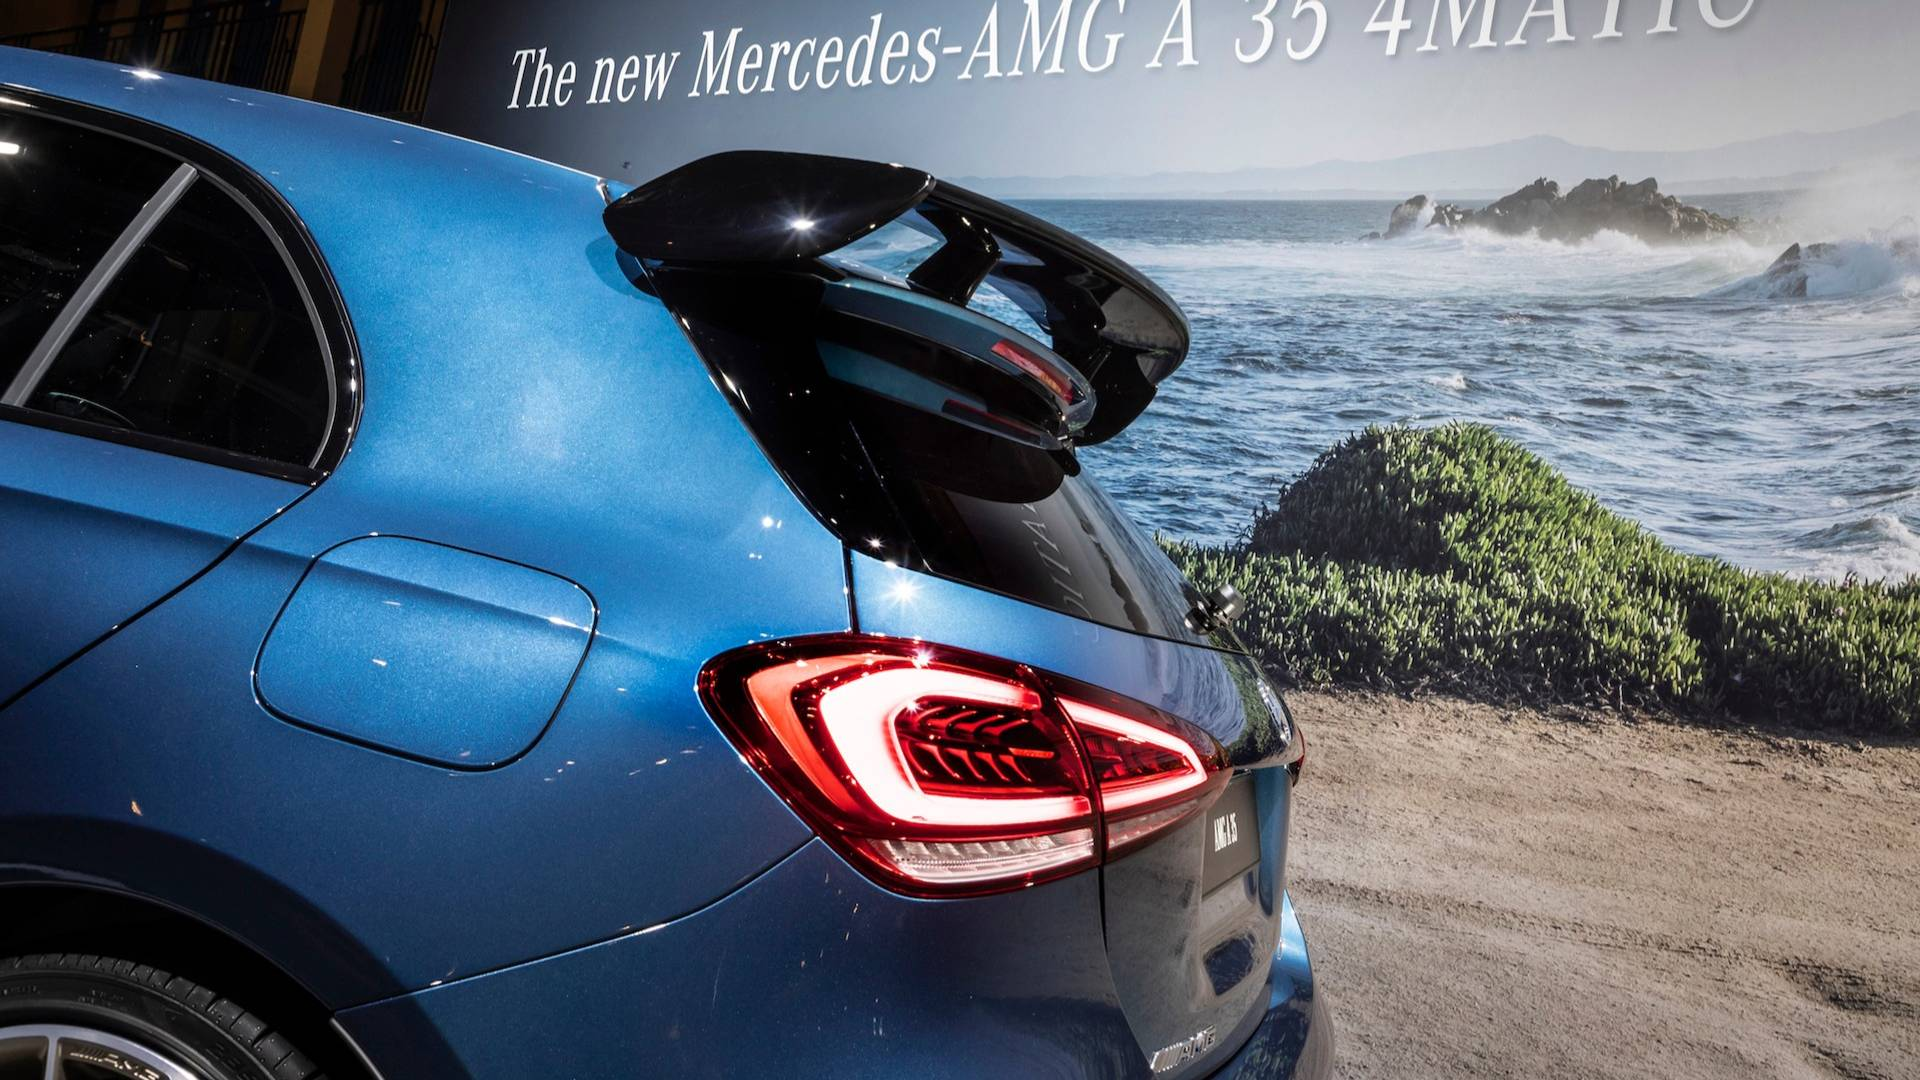 2019 Mercedes-AMG A35 4Matic Goes Official With 302 Horsepower